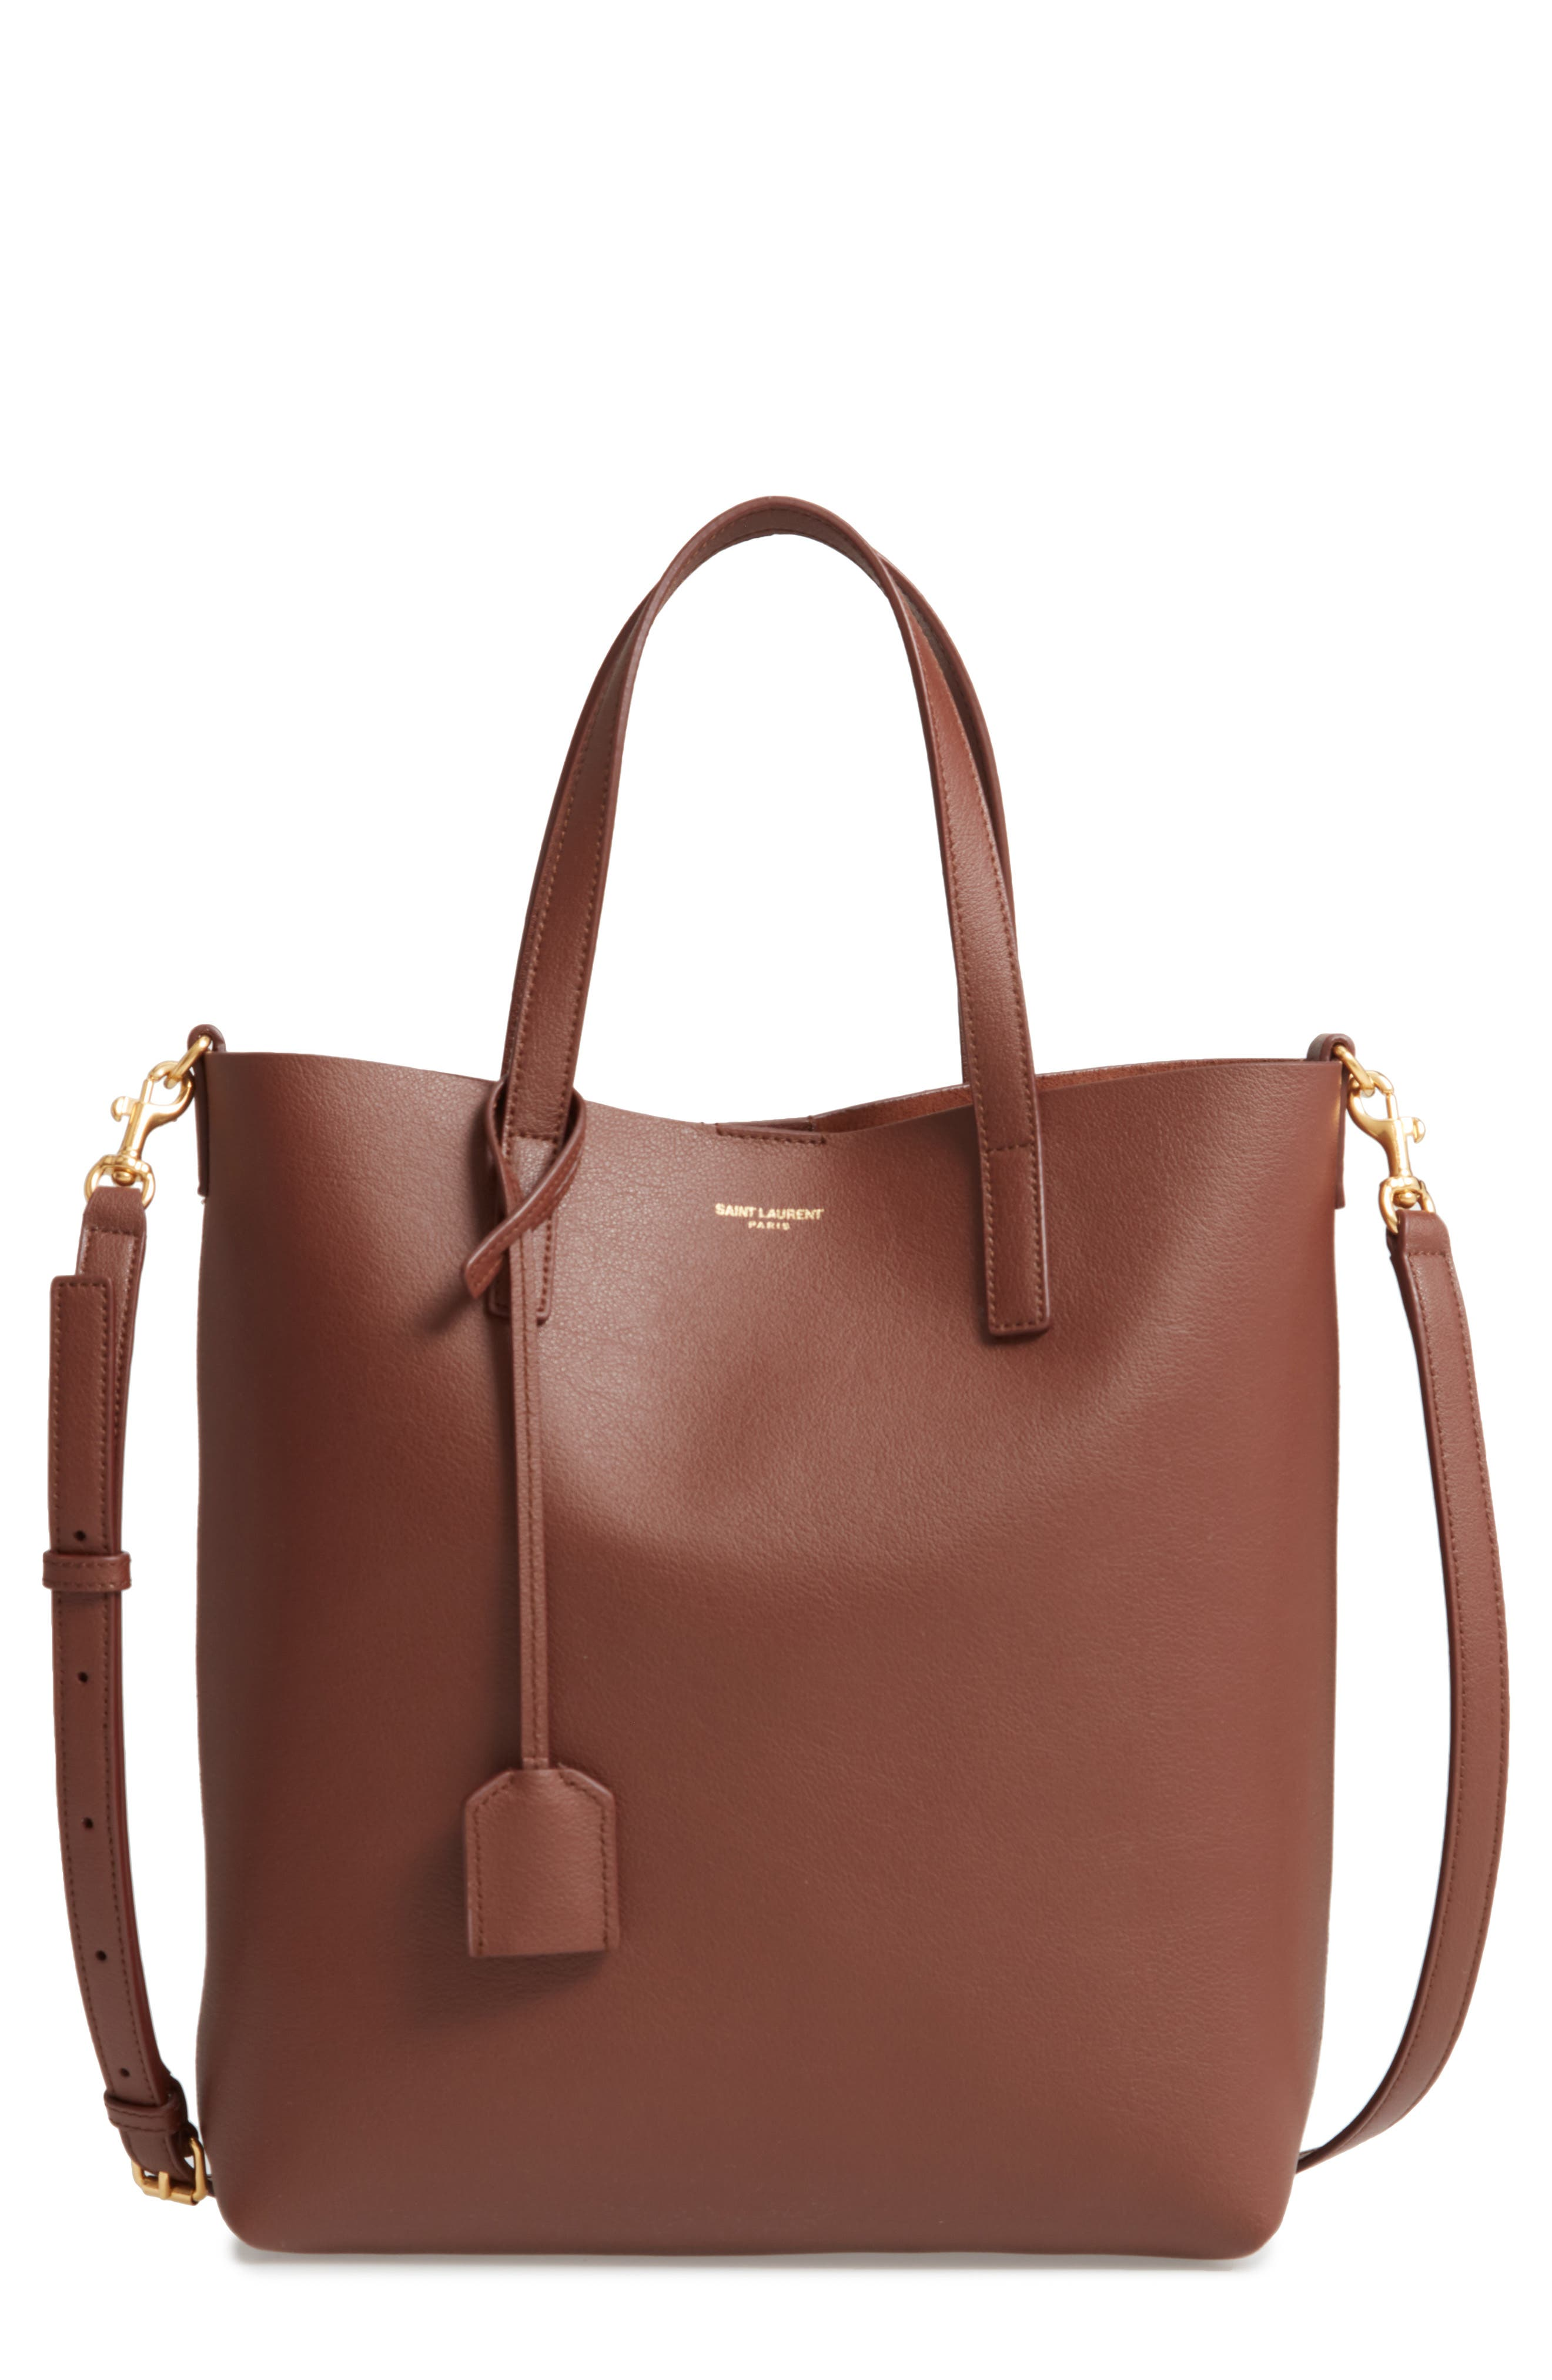 SAINT LAURENT,                             Toy Shopping Leather Tote,                             Main thumbnail 1, color,                             BRANDY OLD